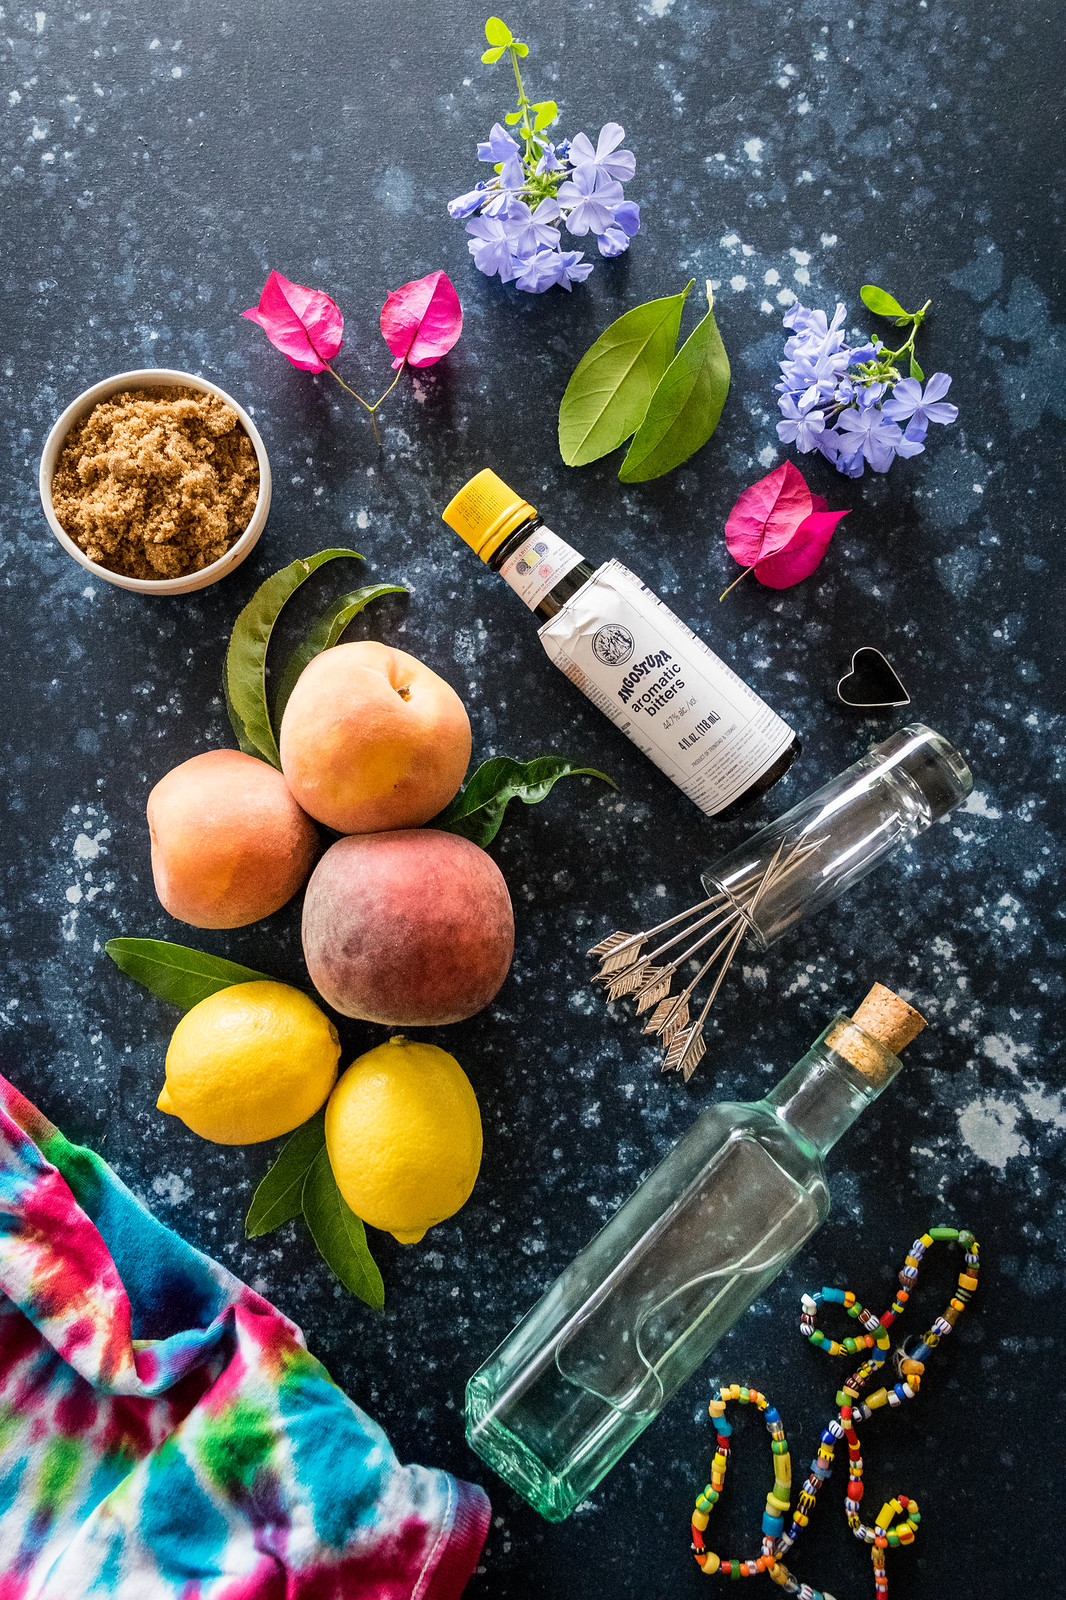 fresh fruit and booze: what more could you ask for?